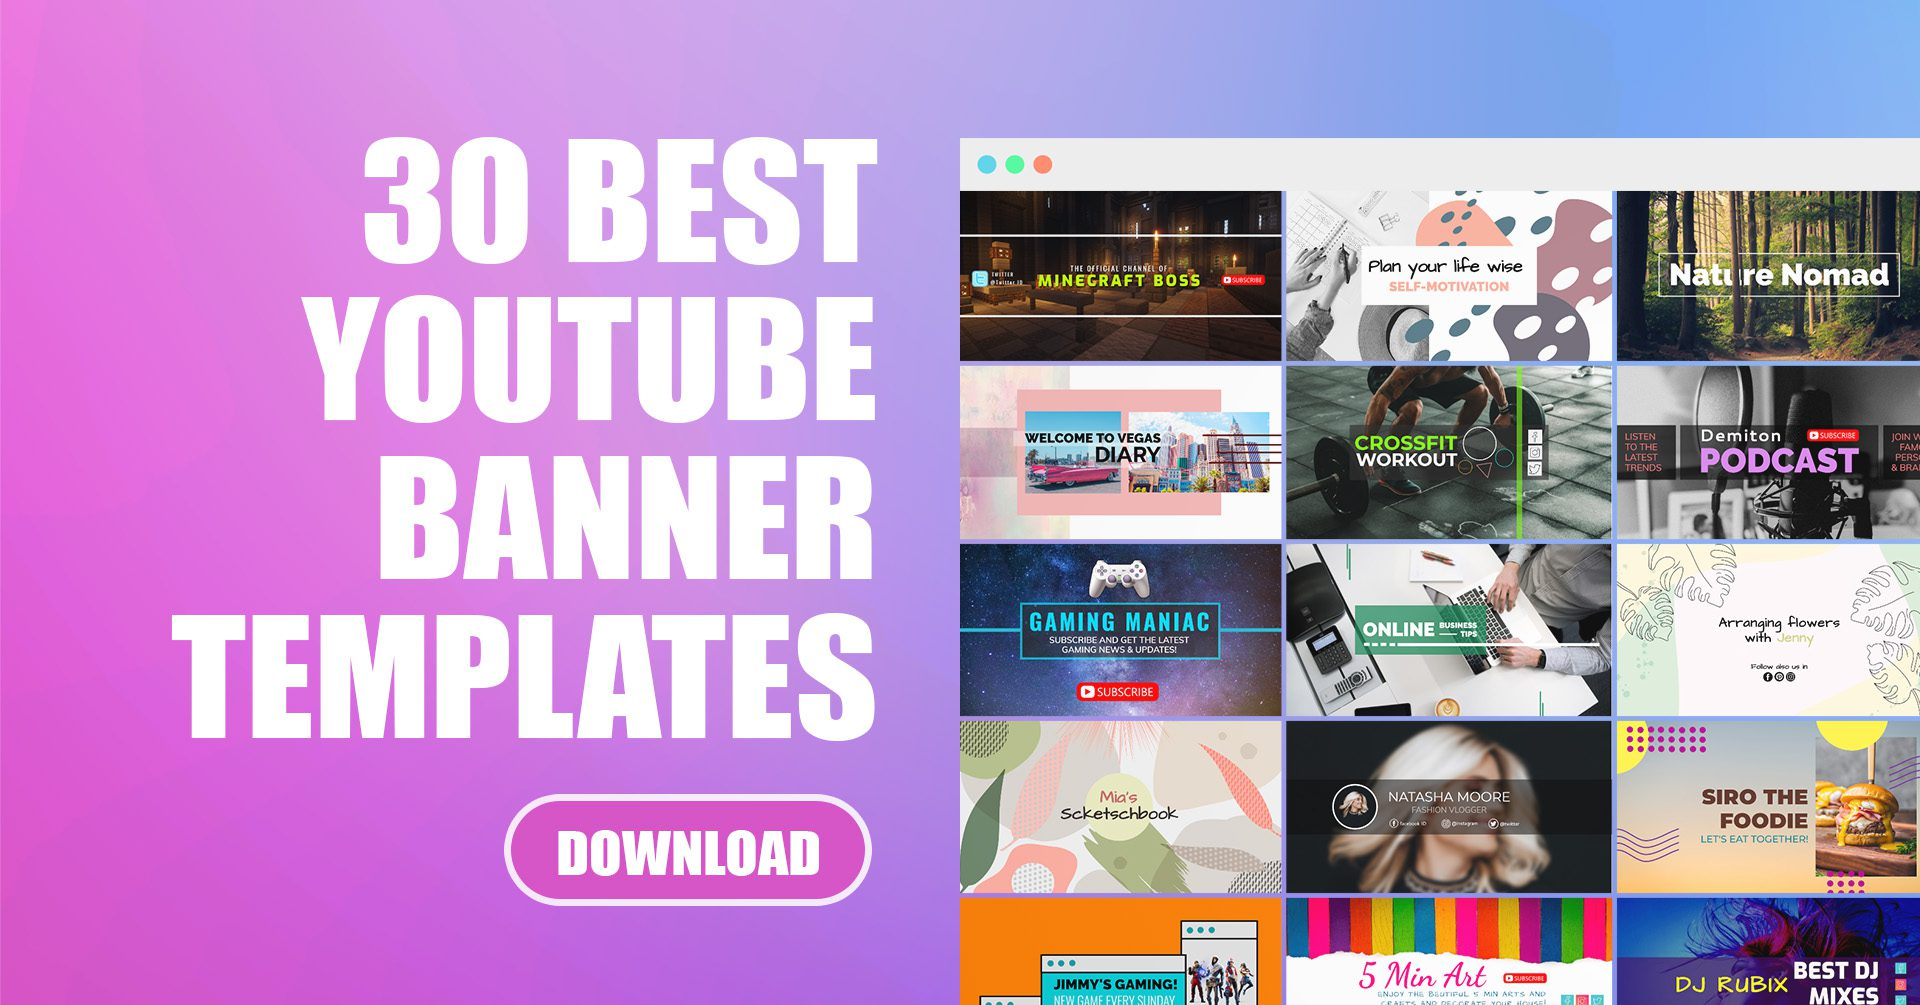 BEST-youtube-cover-banner-templates-download